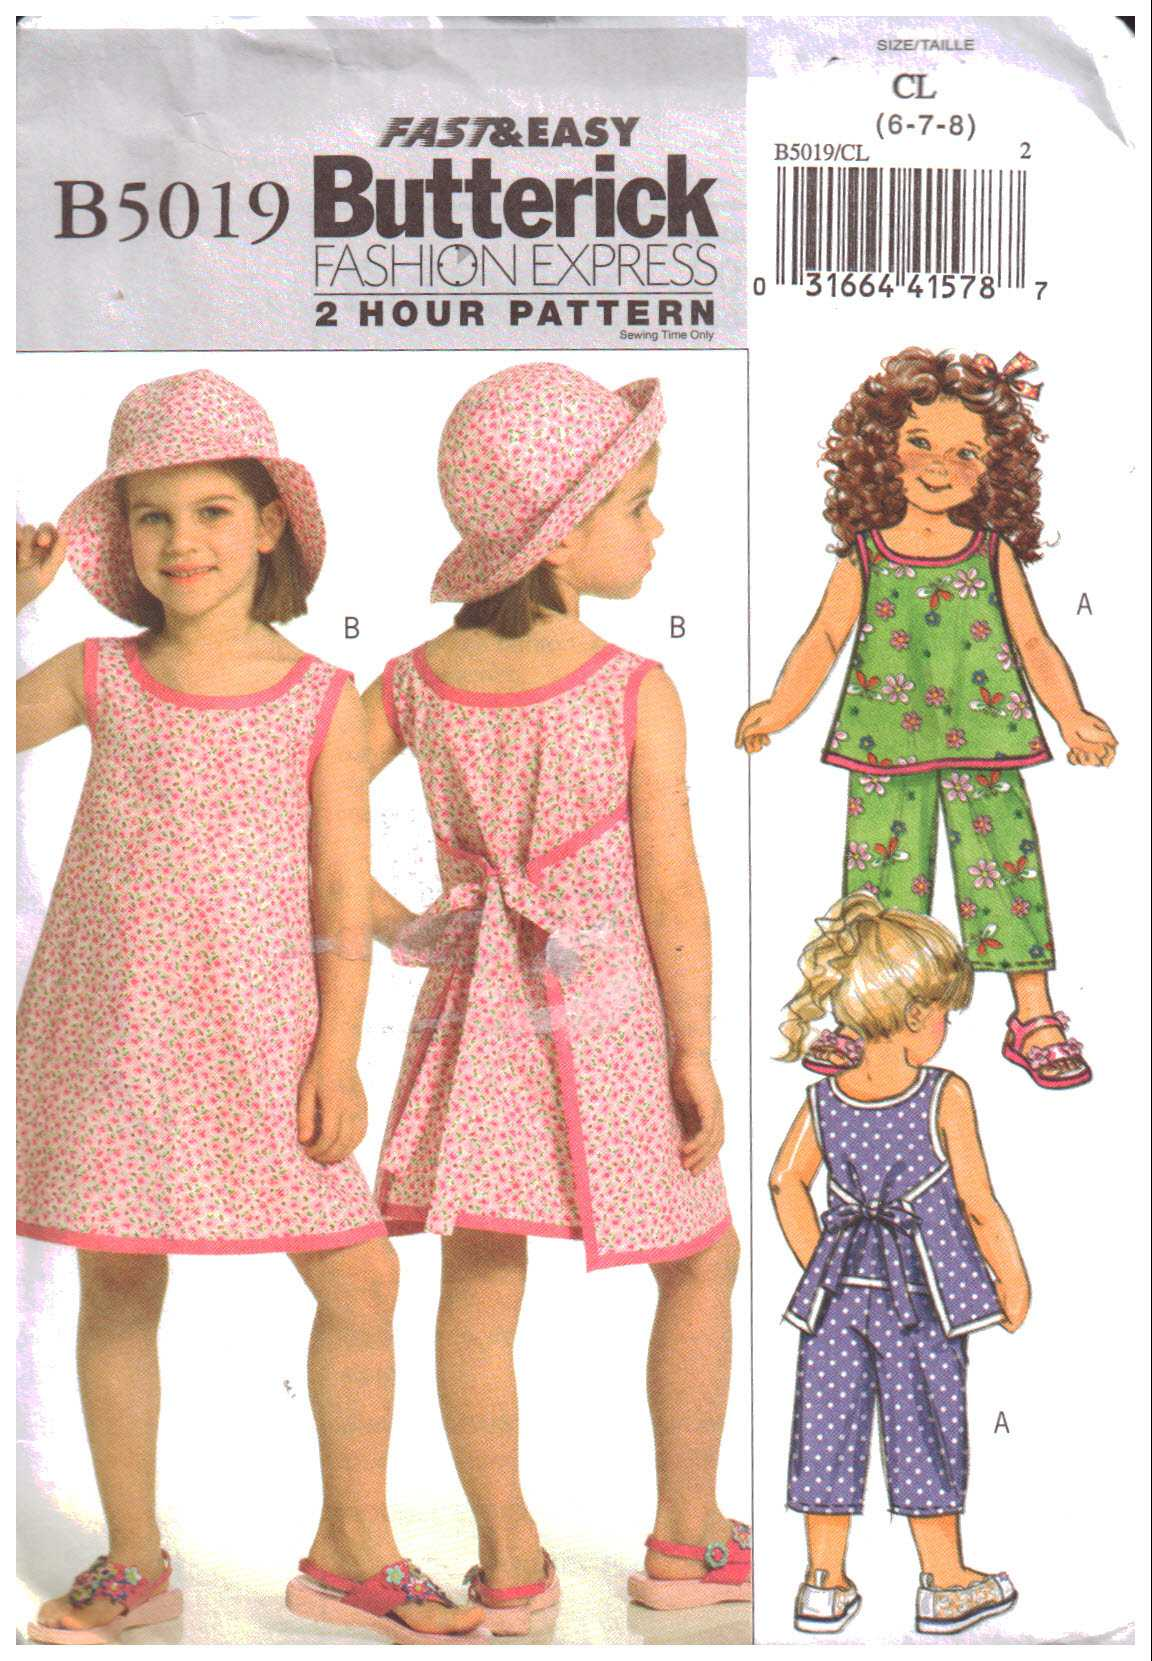 95548a10956c Butterick B5019 Girl's Tops, Dresses, Pants, Hat Size: CL 6-7-8 Used Sewing  Pattern